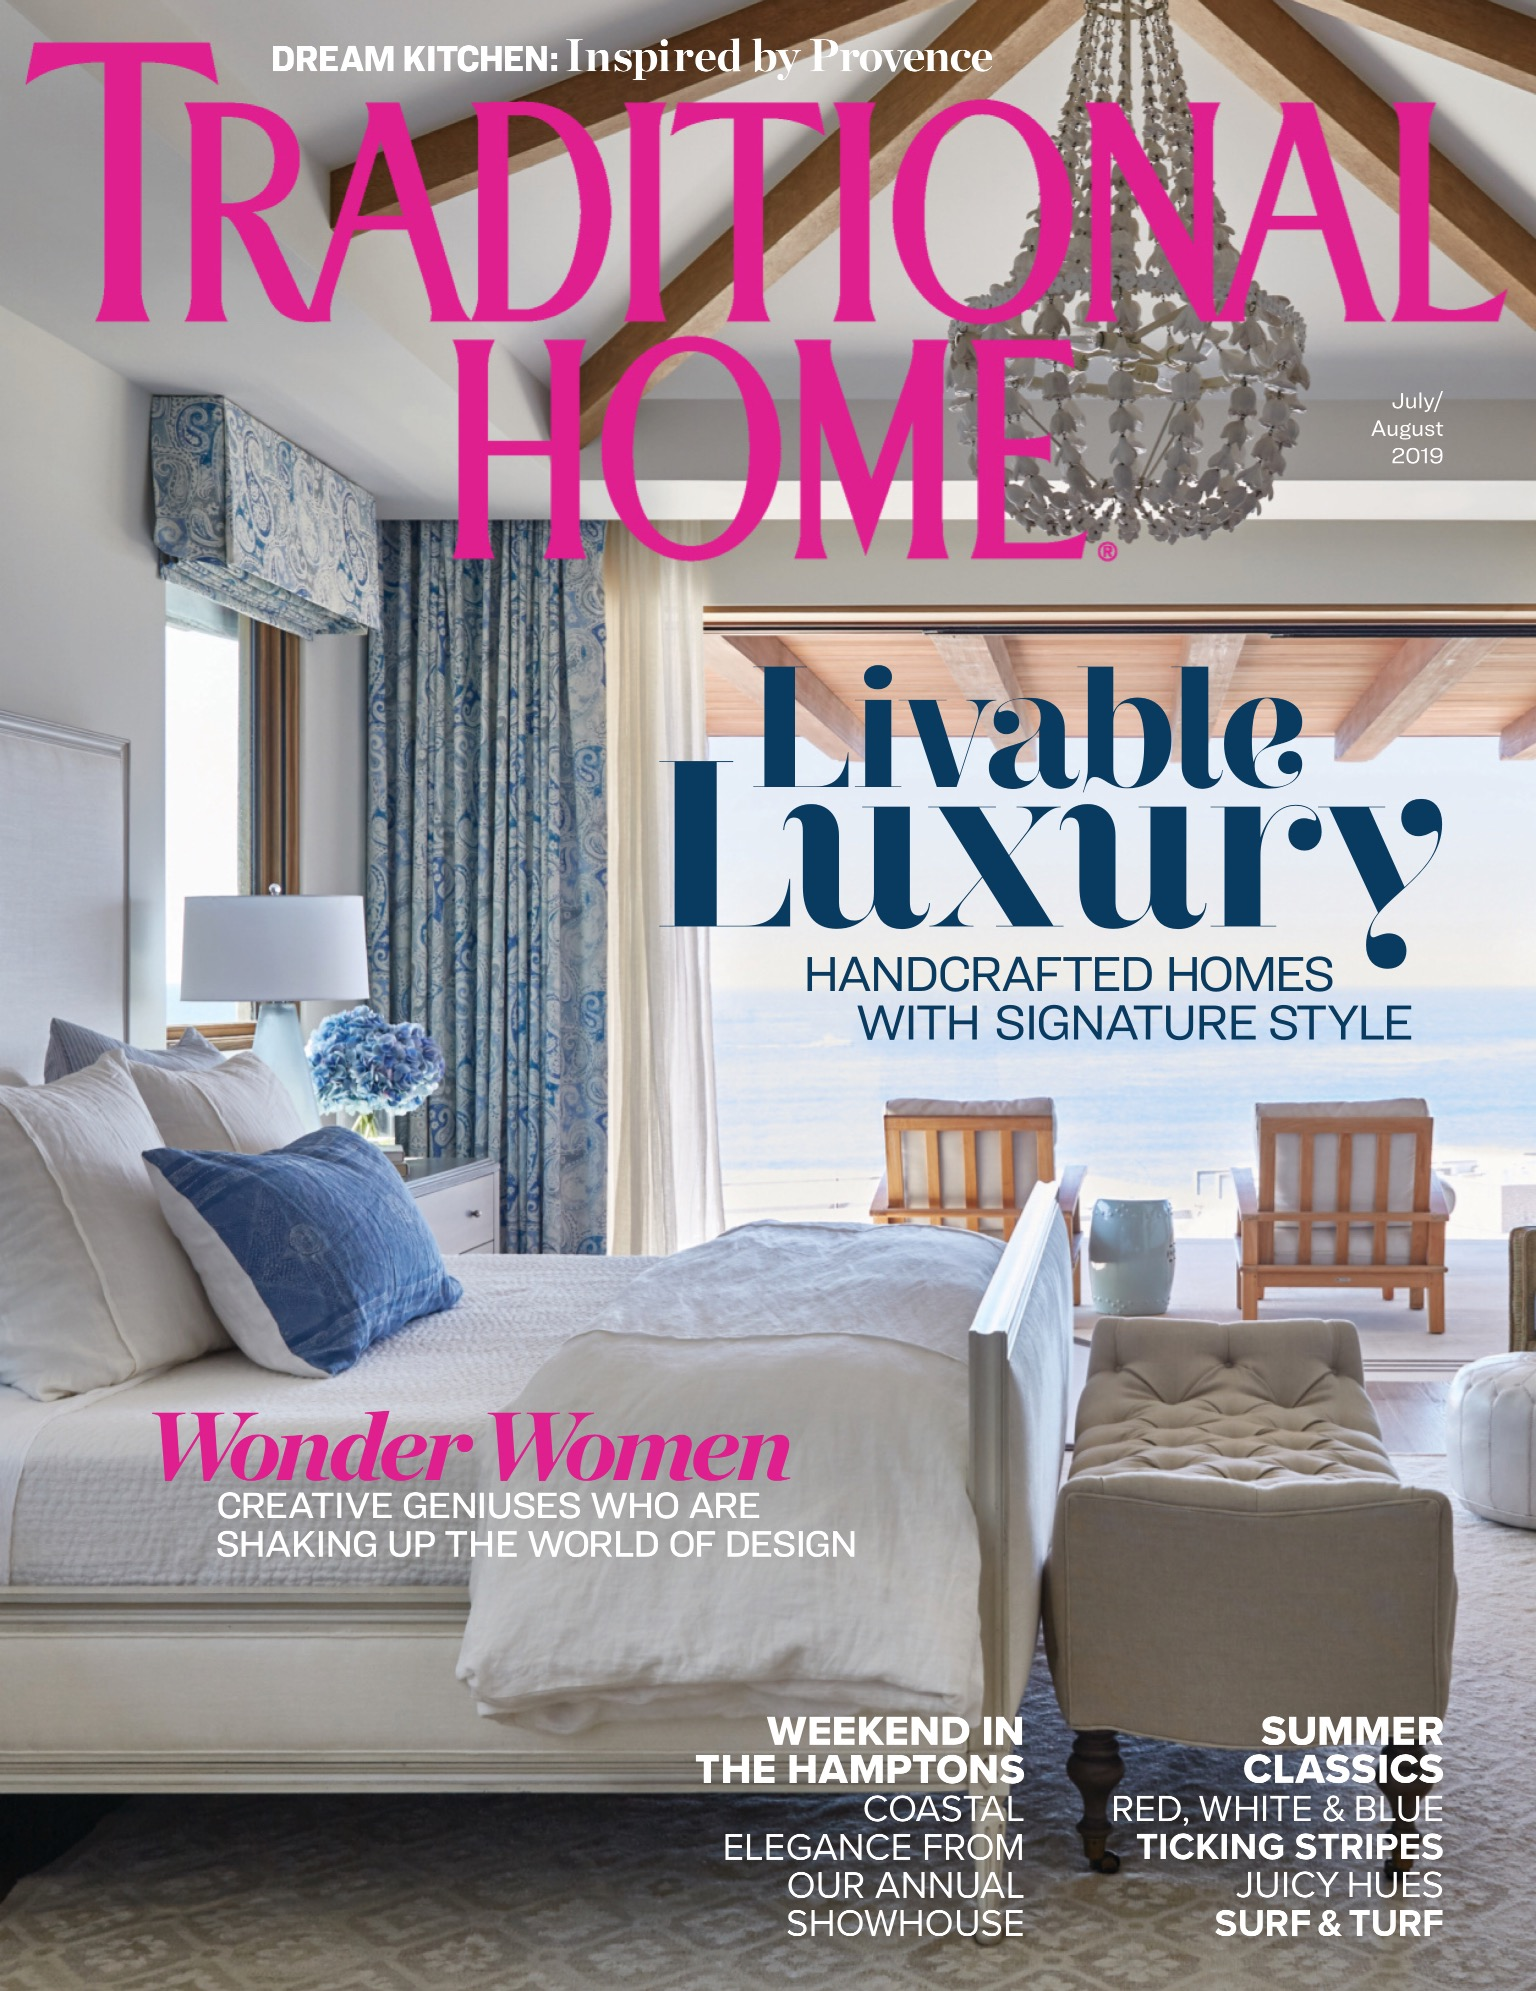 Traditional Home July/August 2019